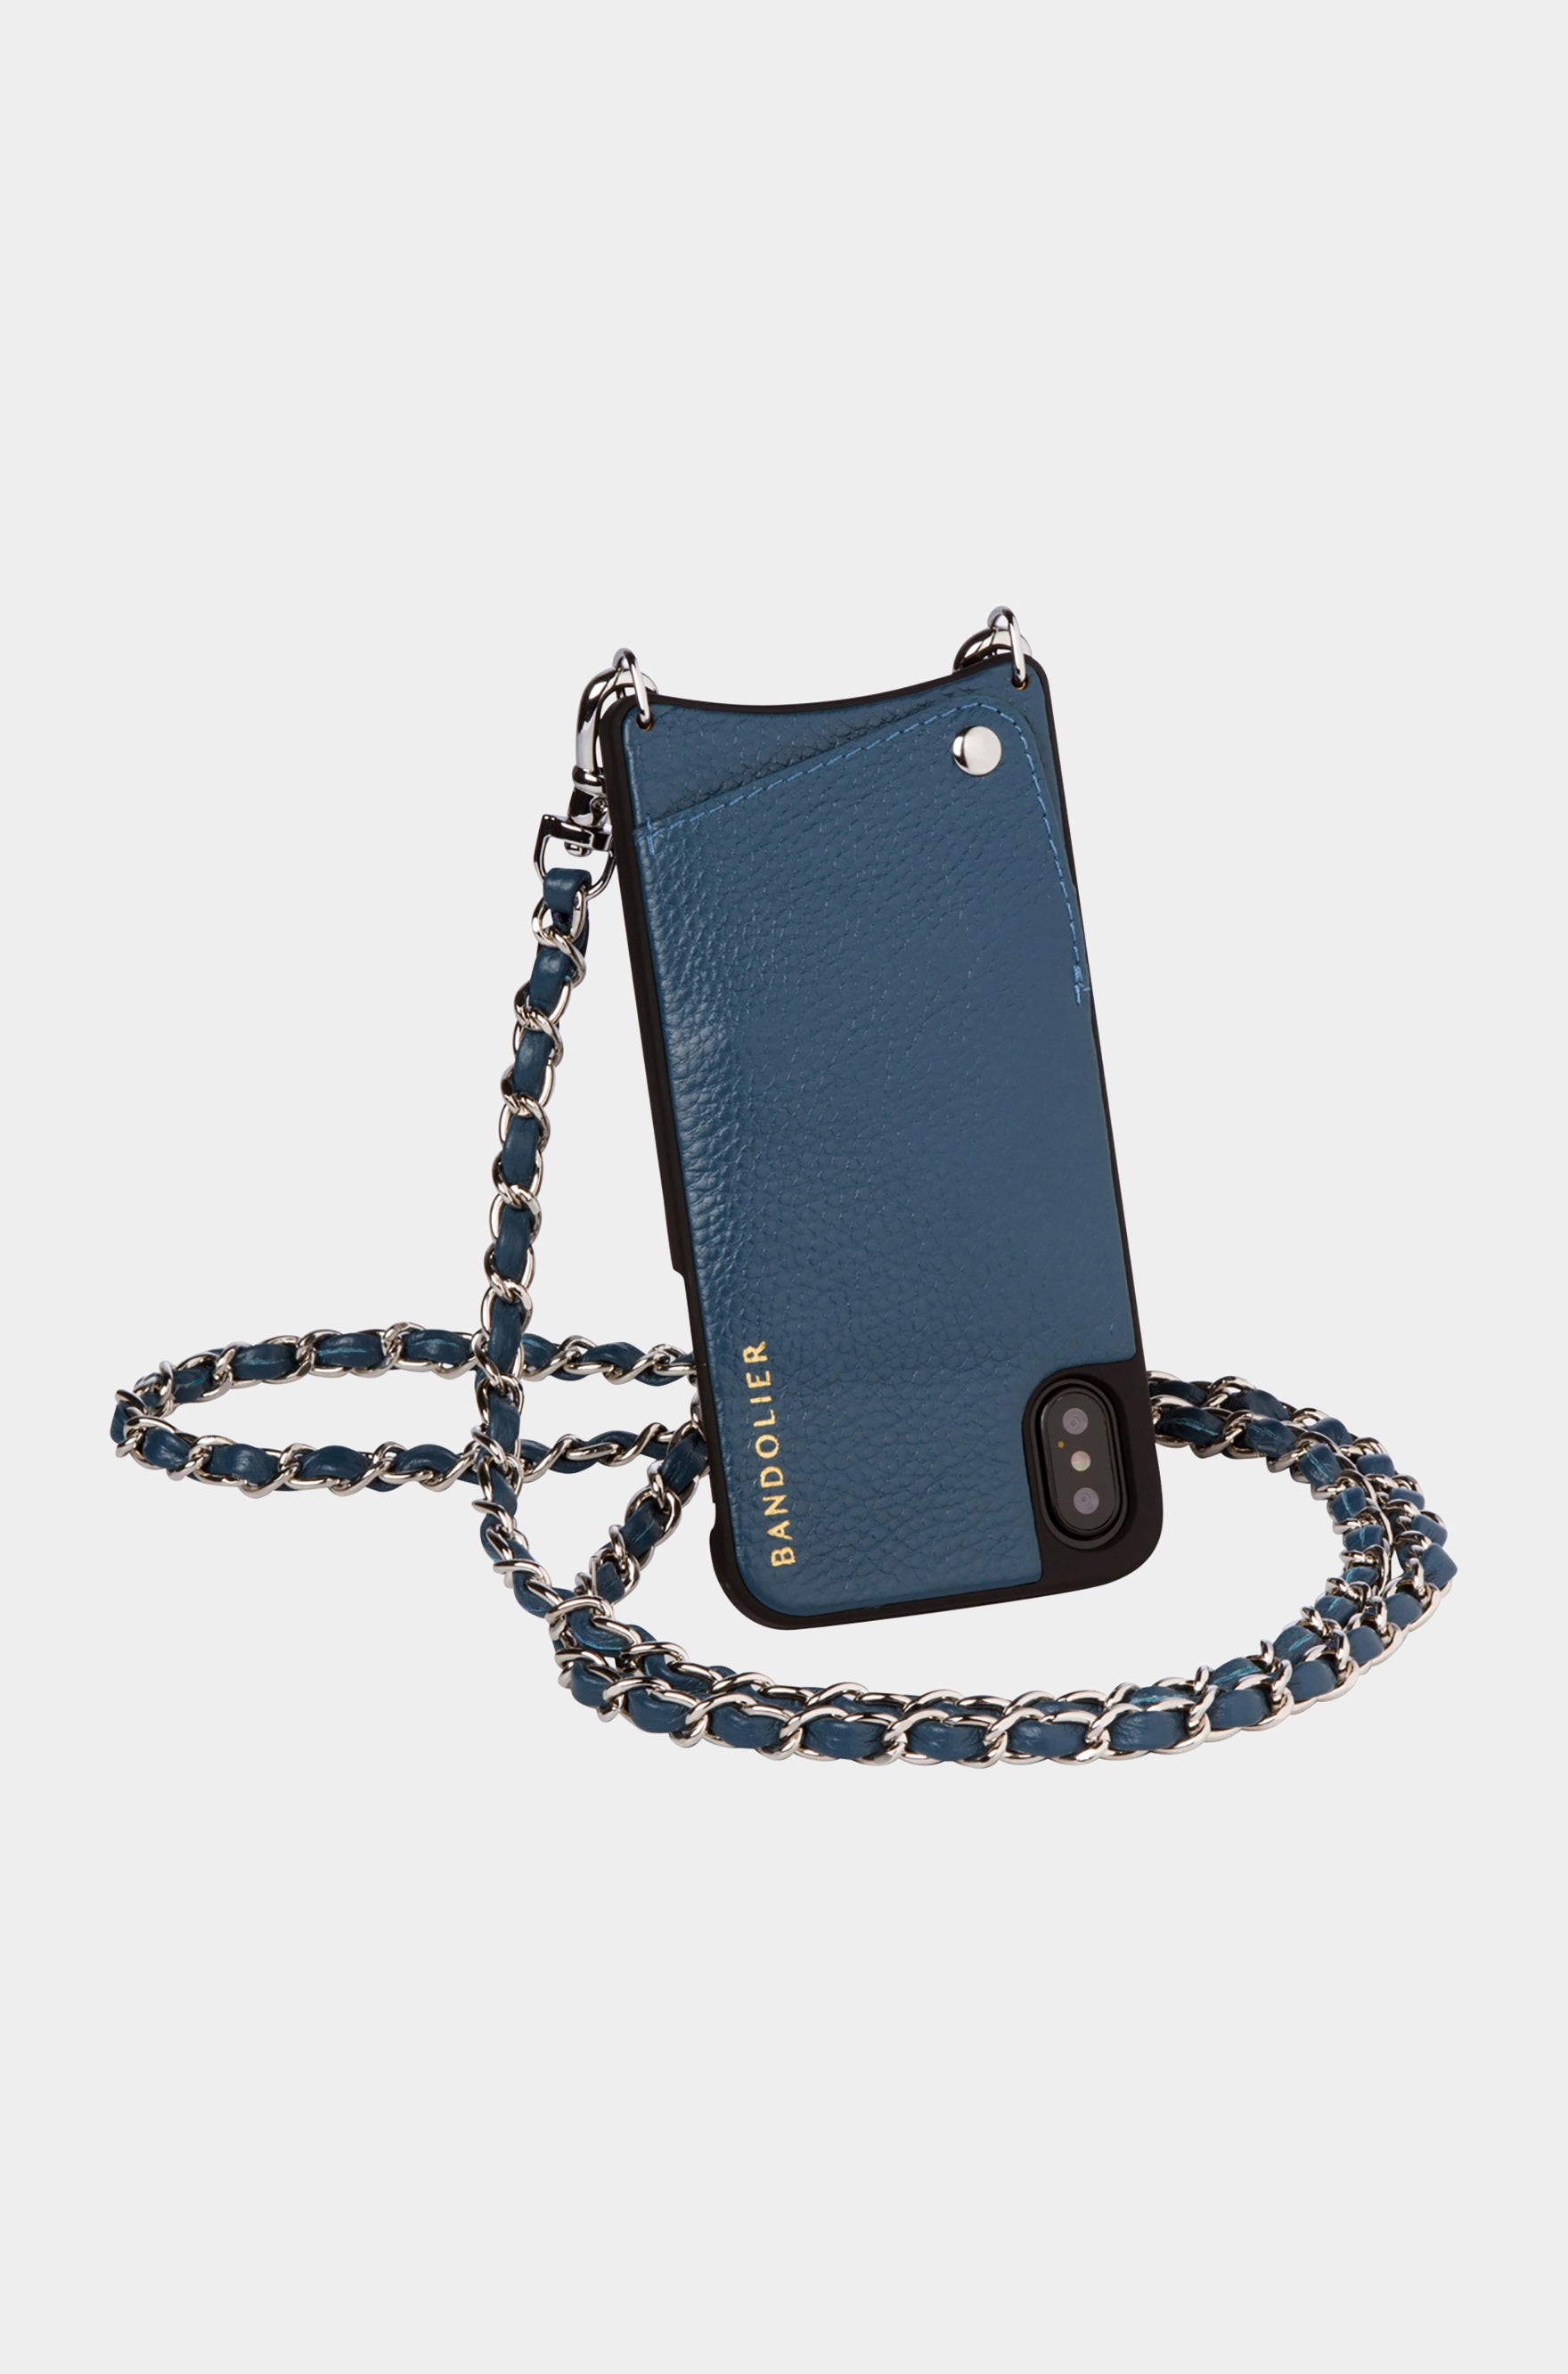 Bandolier Leather Crossbody Phone Case for iPhone - Lucy Sapphire/Silver